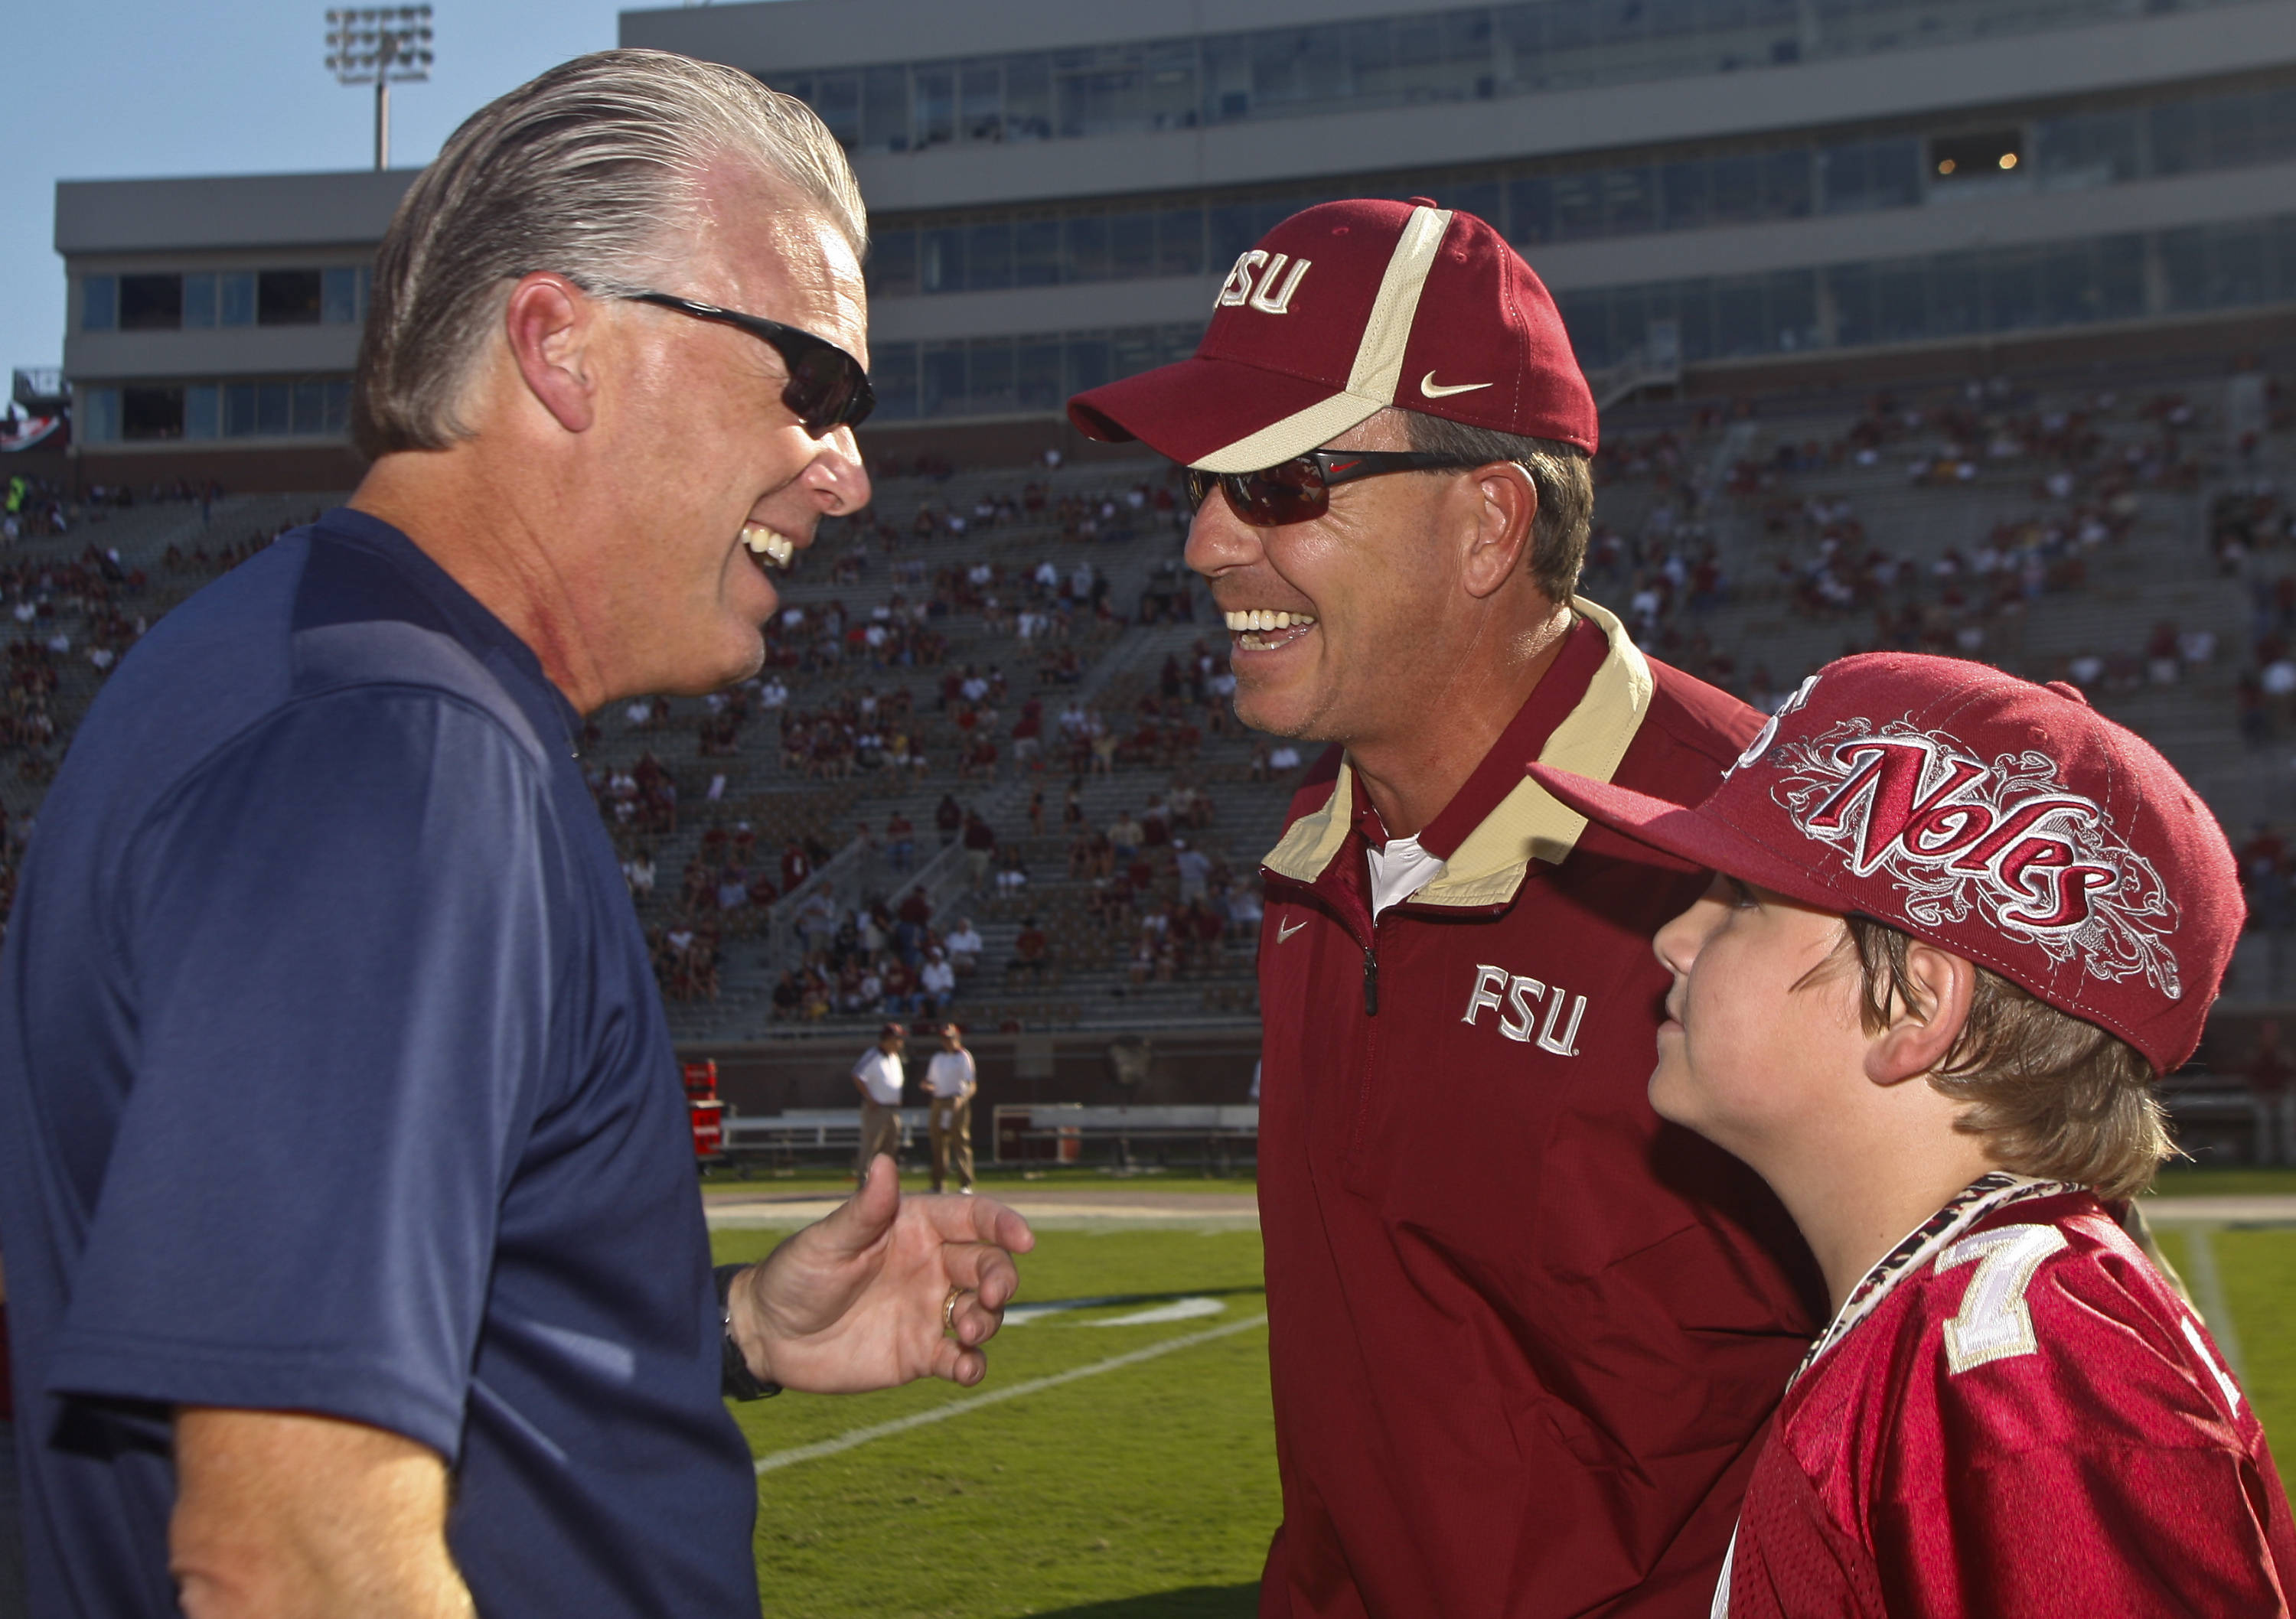 Charleston Southern head coach Jay Mills, left, shares a laugh with Florida State head coach Jimbo Fisher, center, and Fisher's son Trey Fisher, 10, prior to the start of an NCAA college football game on Saturday, Sept. 10, 2011, in Tallahassee, Fla. (AP Photo/Phil Sears)